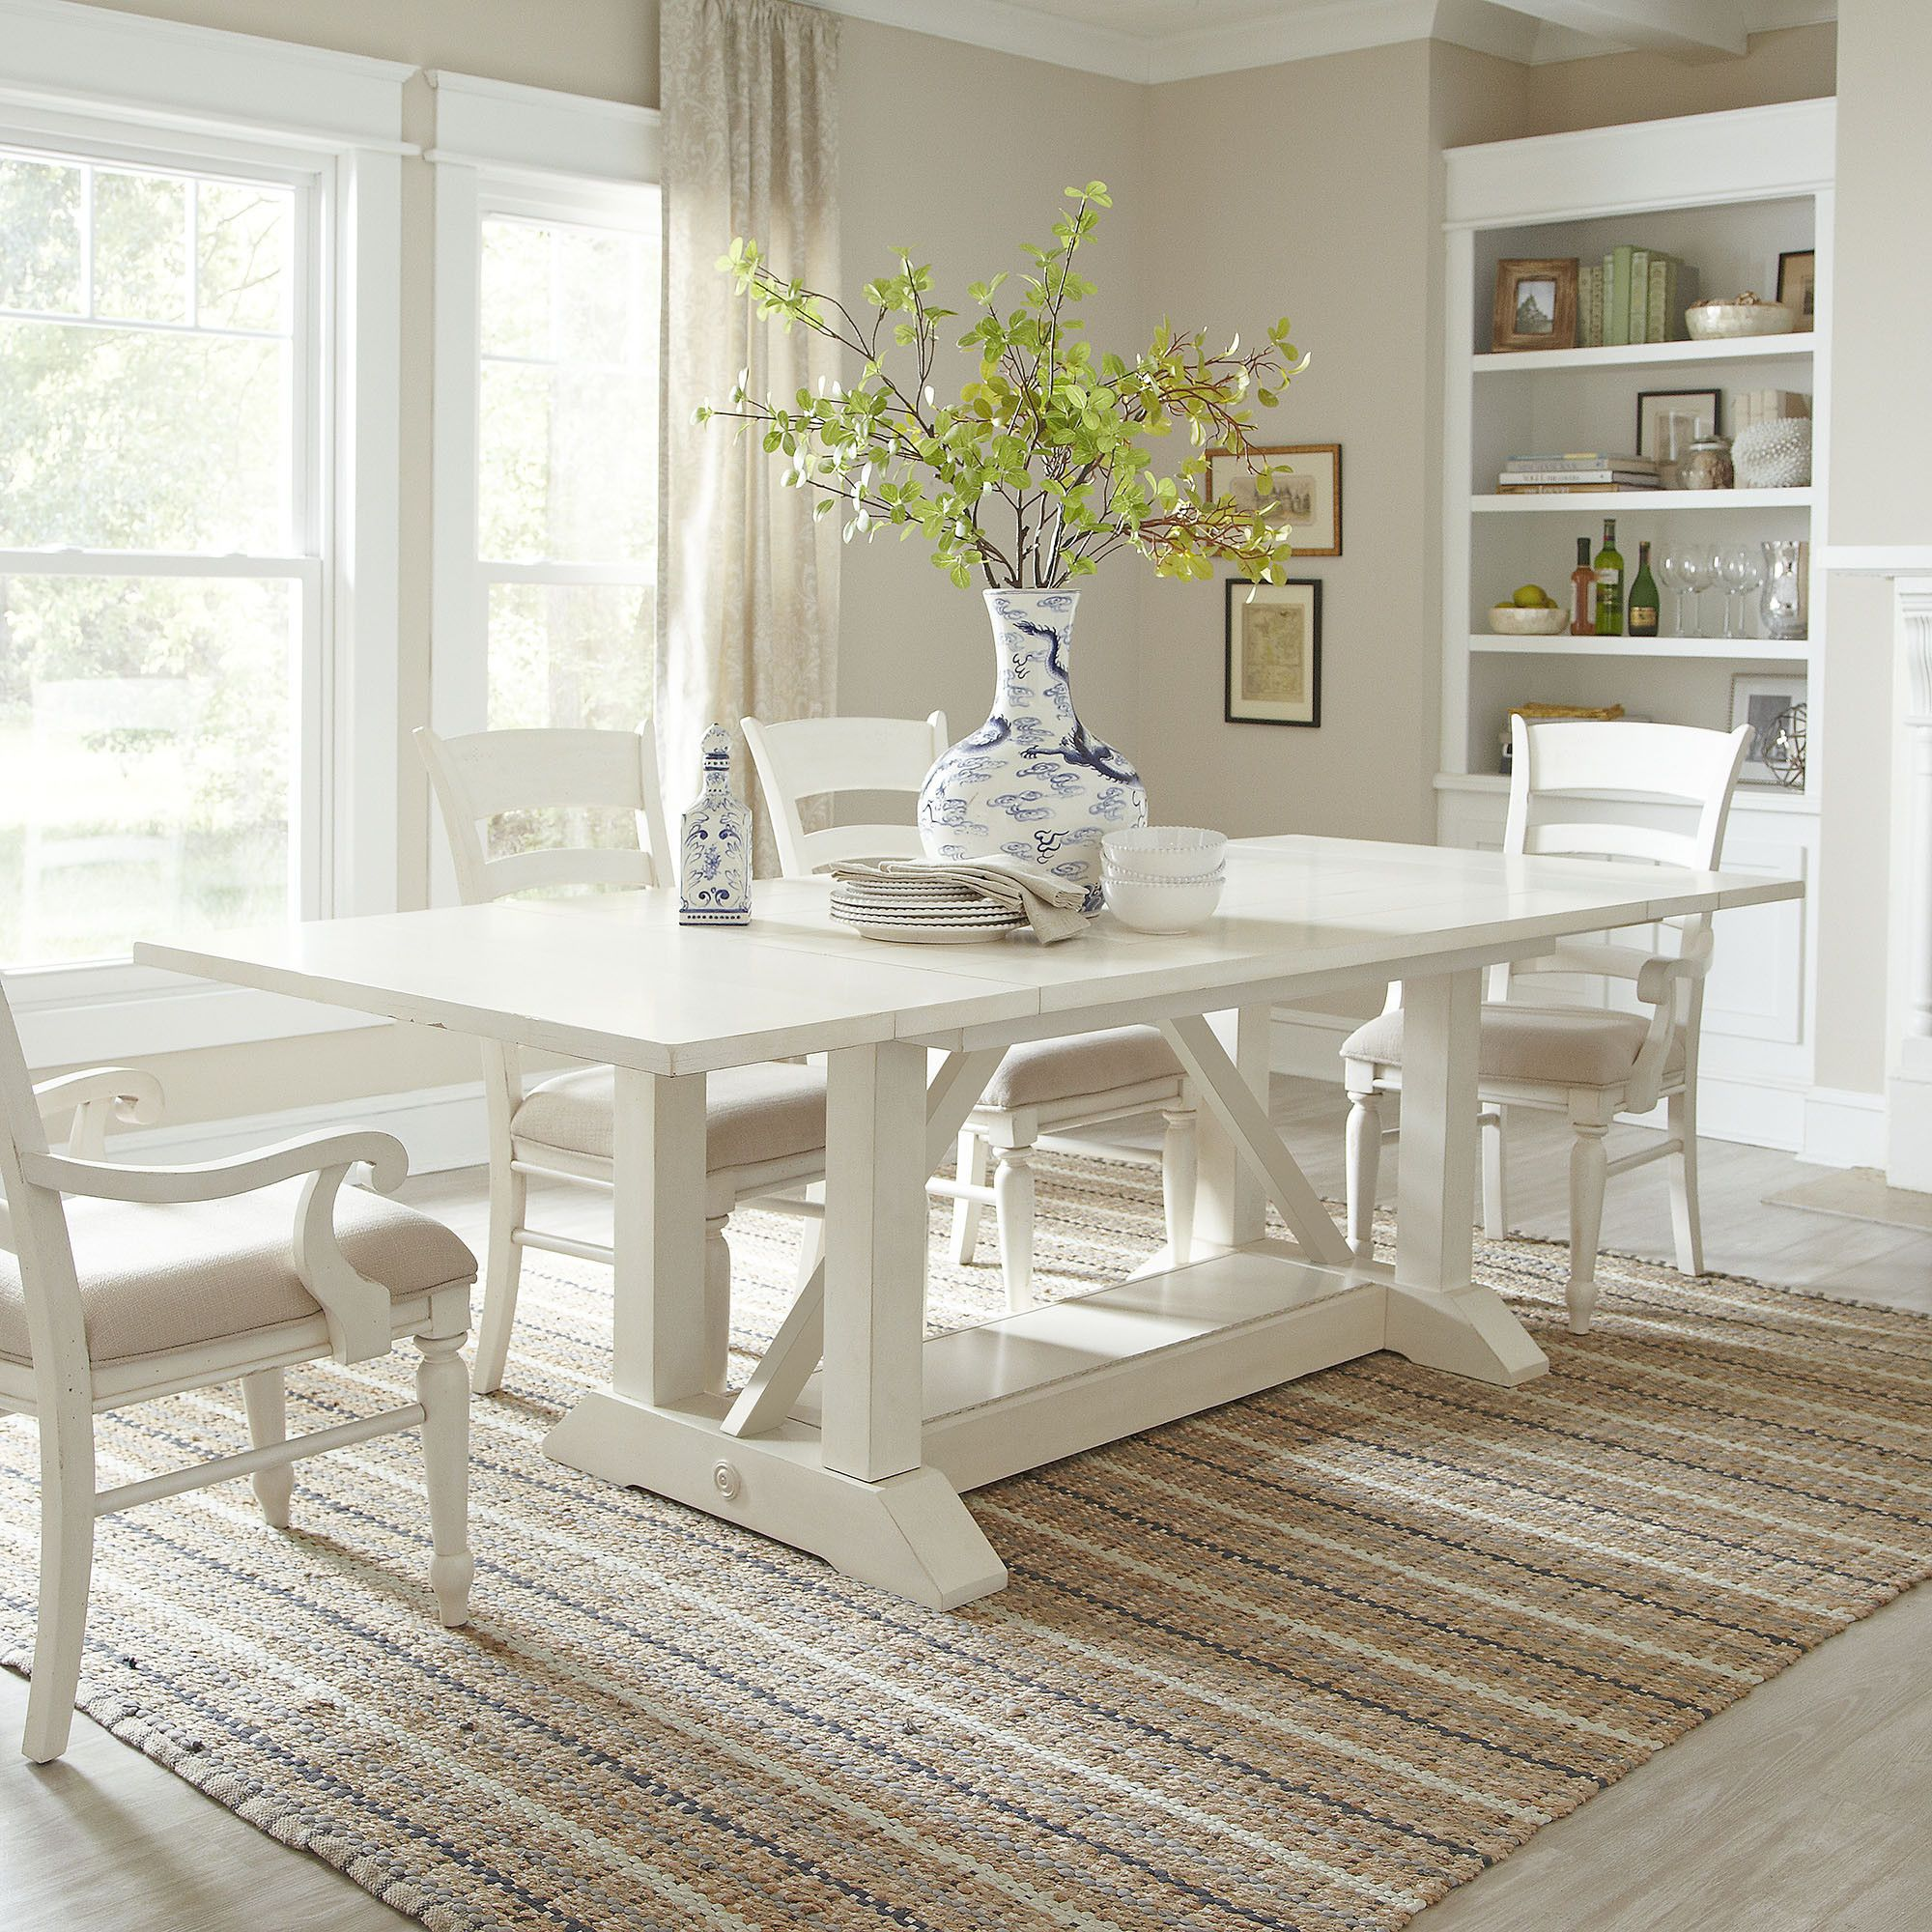 Dining Open To Kitchen Love The White The Island The Dining